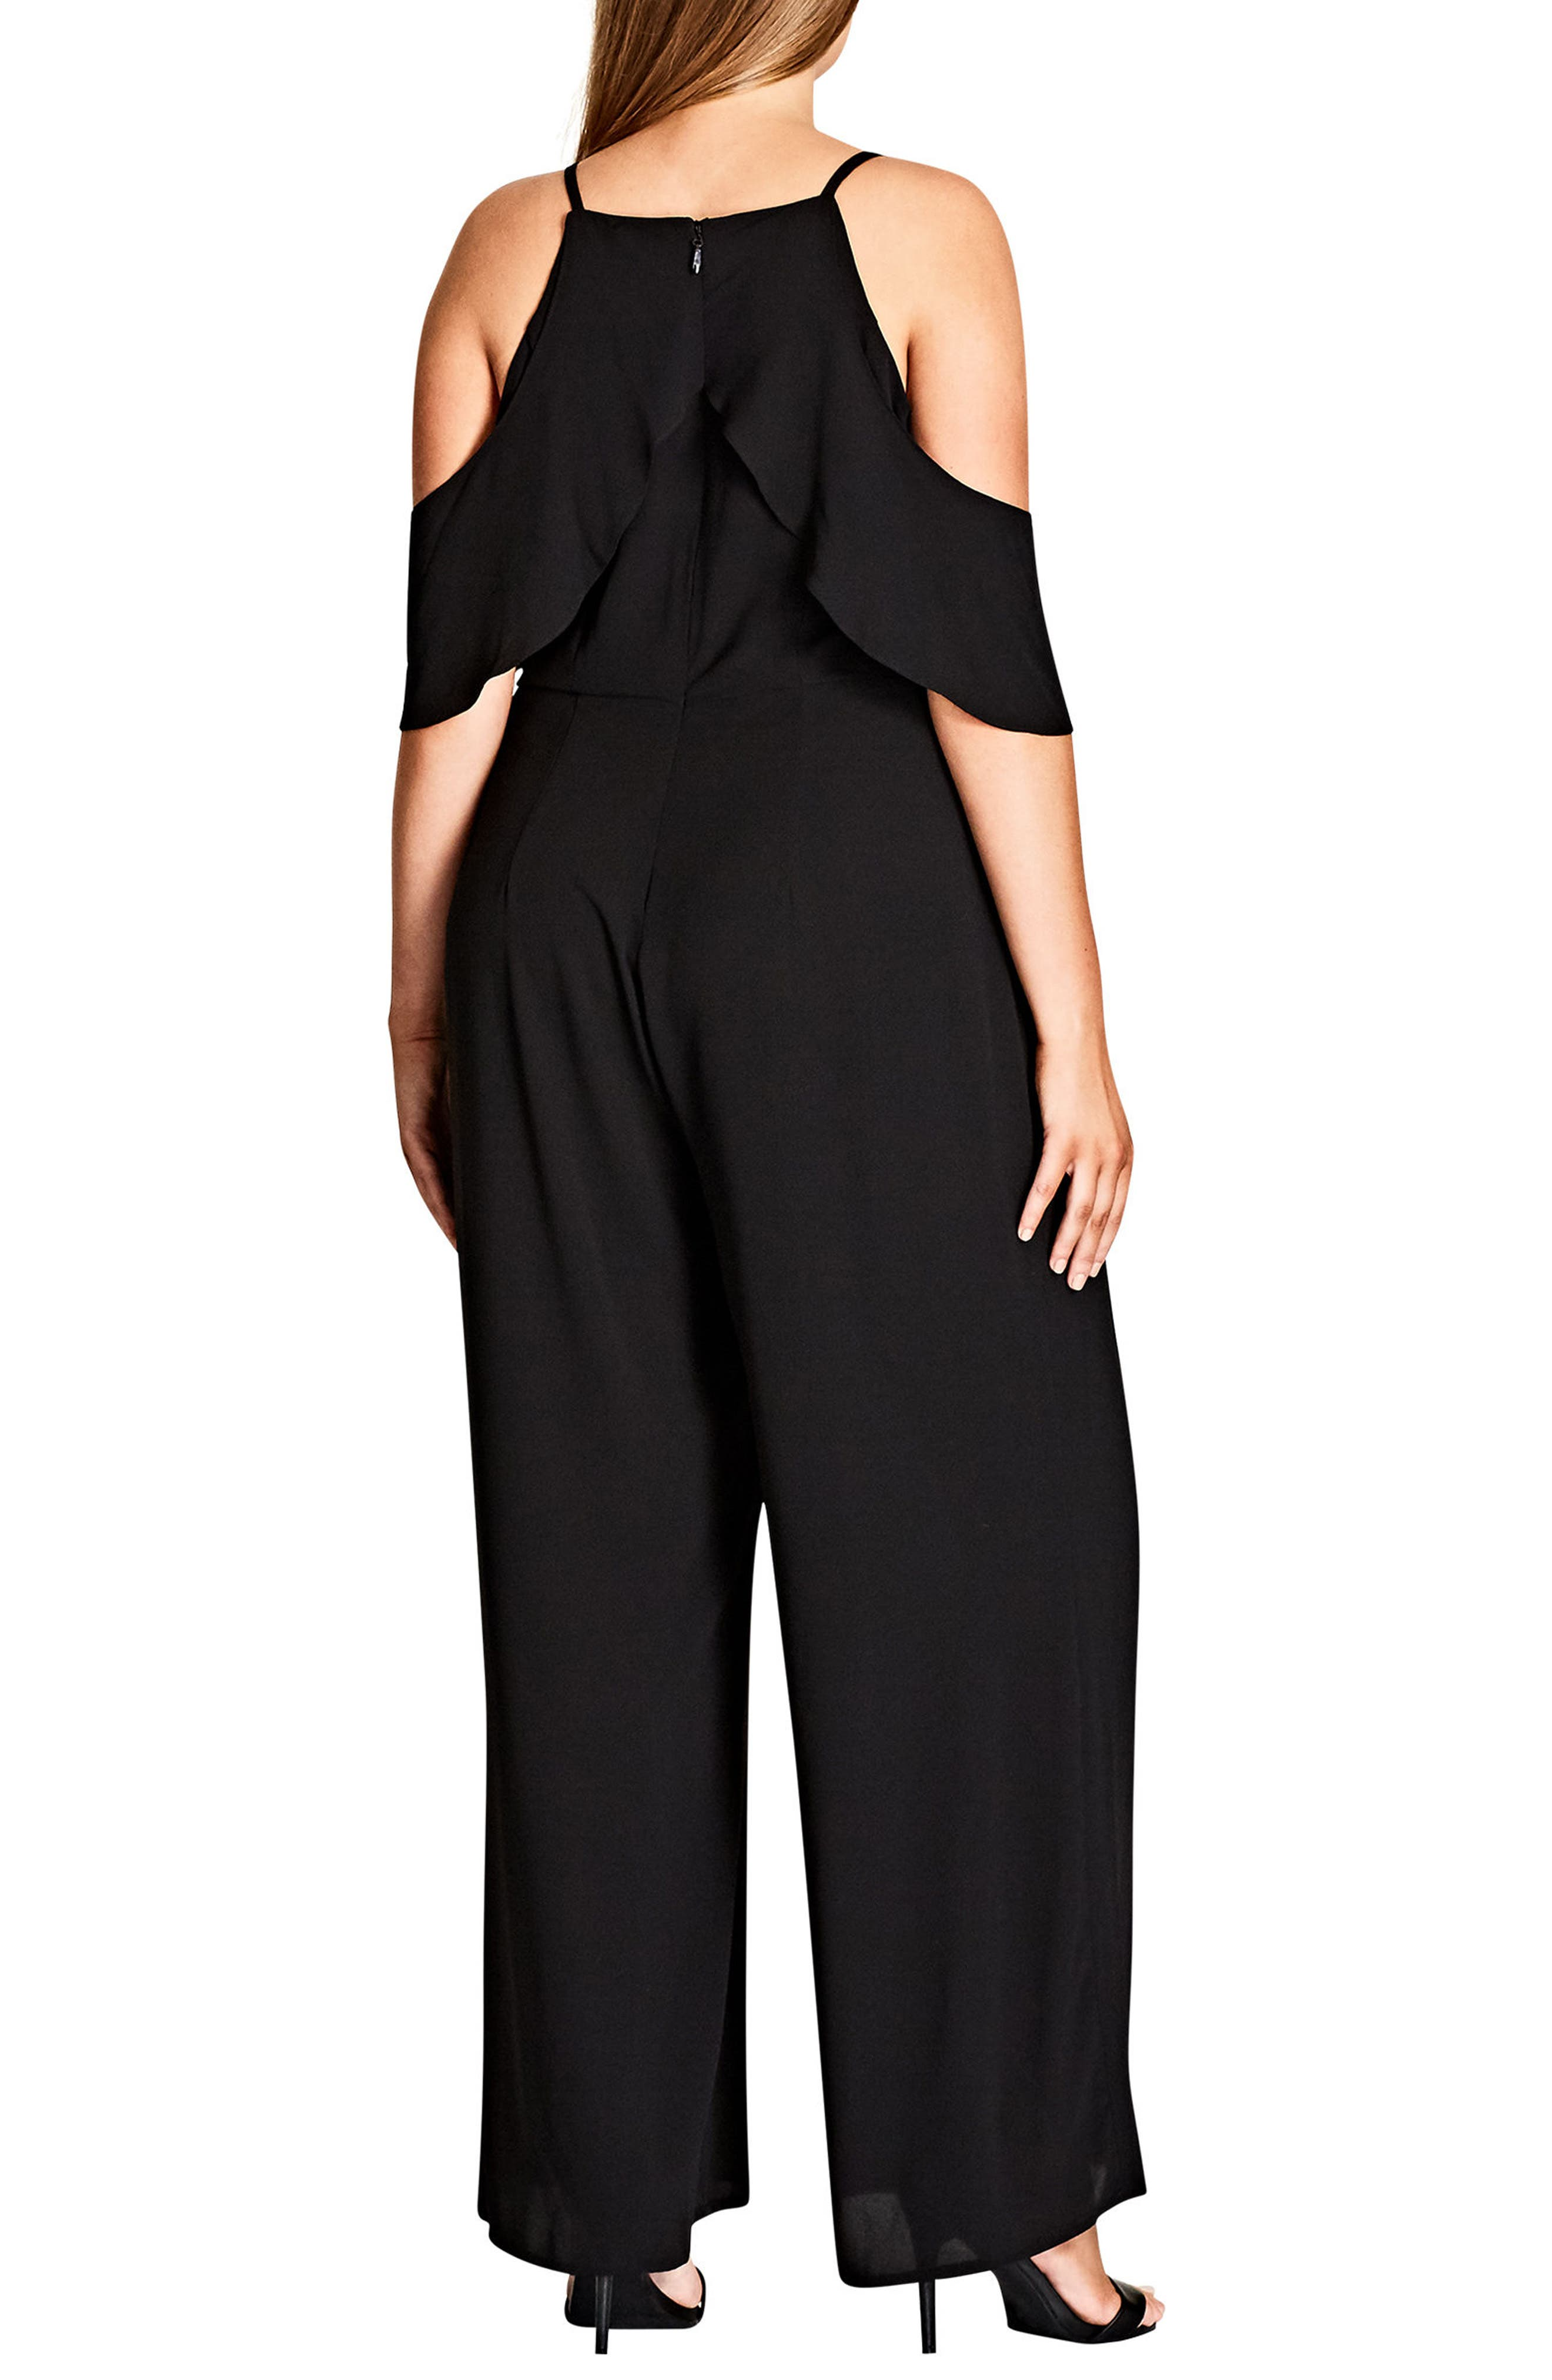 Serenity Cold Shoulder Jumpsuit,                             Alternate thumbnail 2, color,                             Black